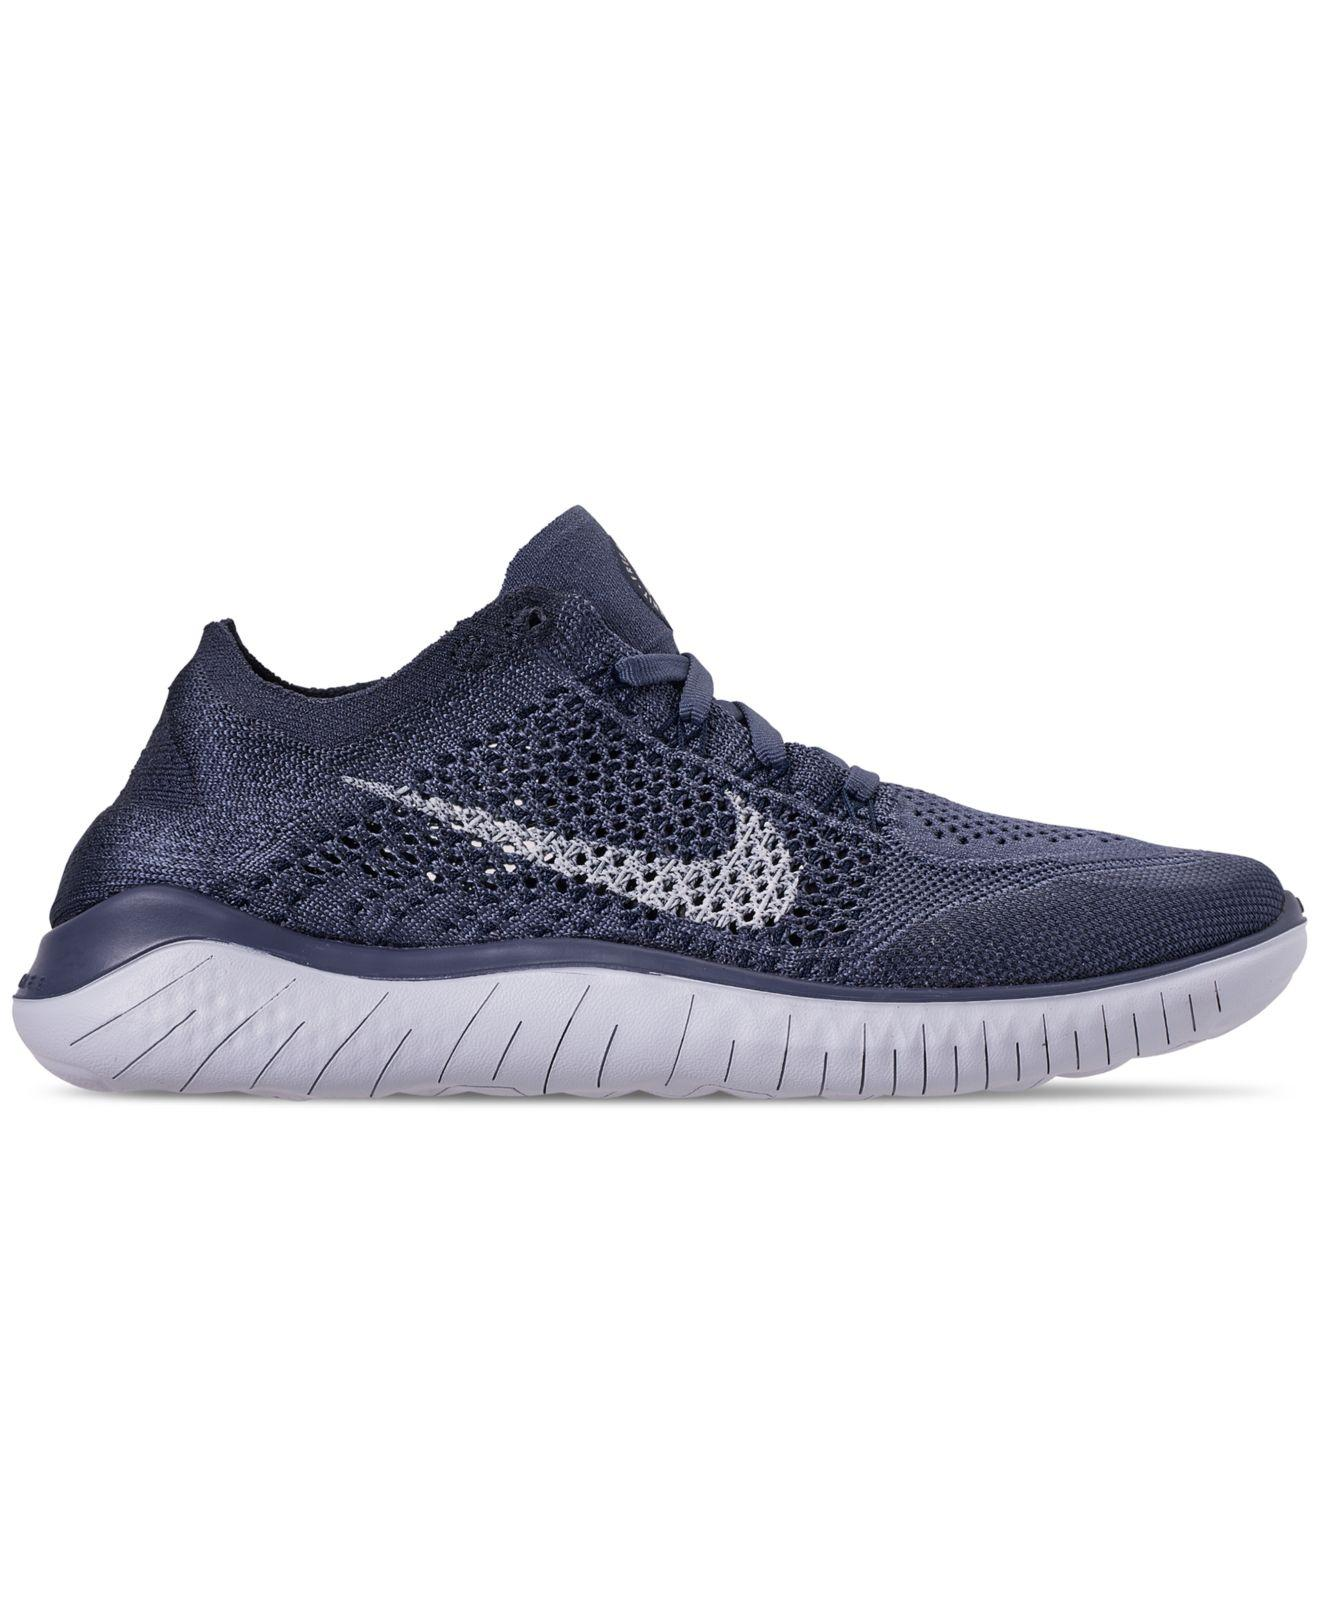 39ce59cb5be7 Lyst - Nike Free Rn Flyknit 2018 Running Sneakers From Finish Line in Blue  for Men